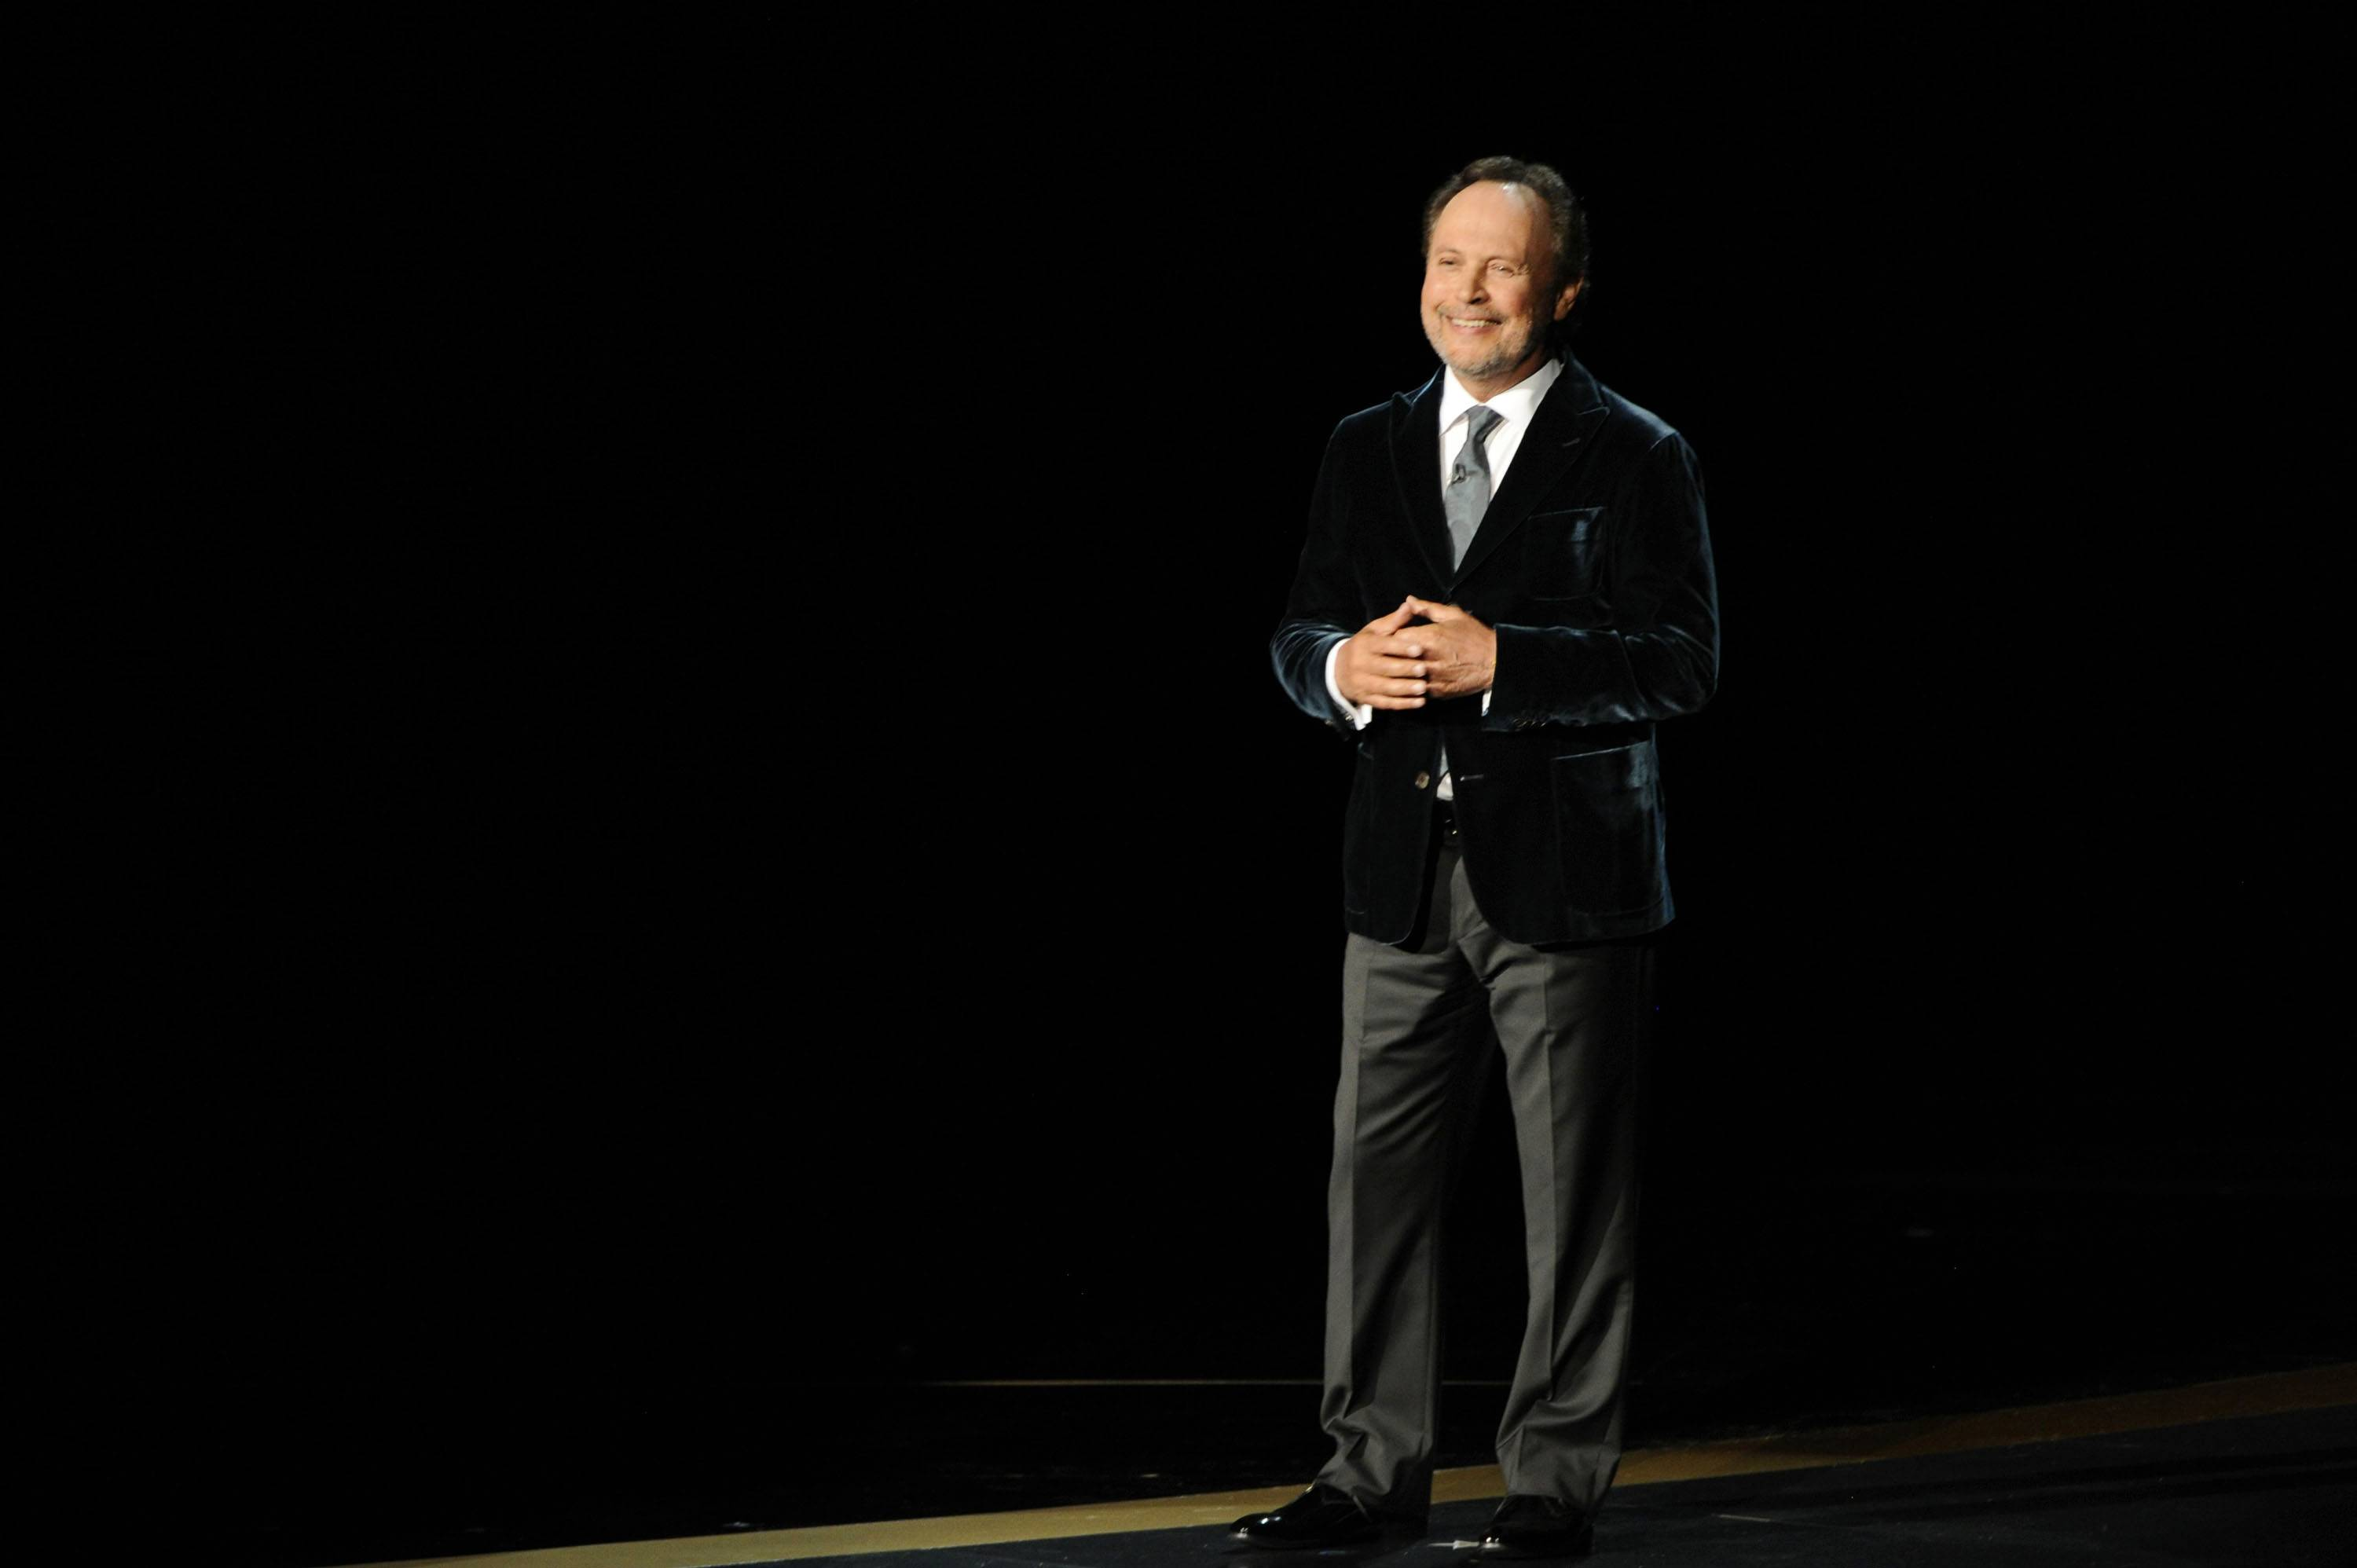 Billy Crystal speaks during an In Memoriam tribute to Robin Williams at the 66th Annual Primetime Emmy Awards at the Nokia Theatre in L.A. on Monday.